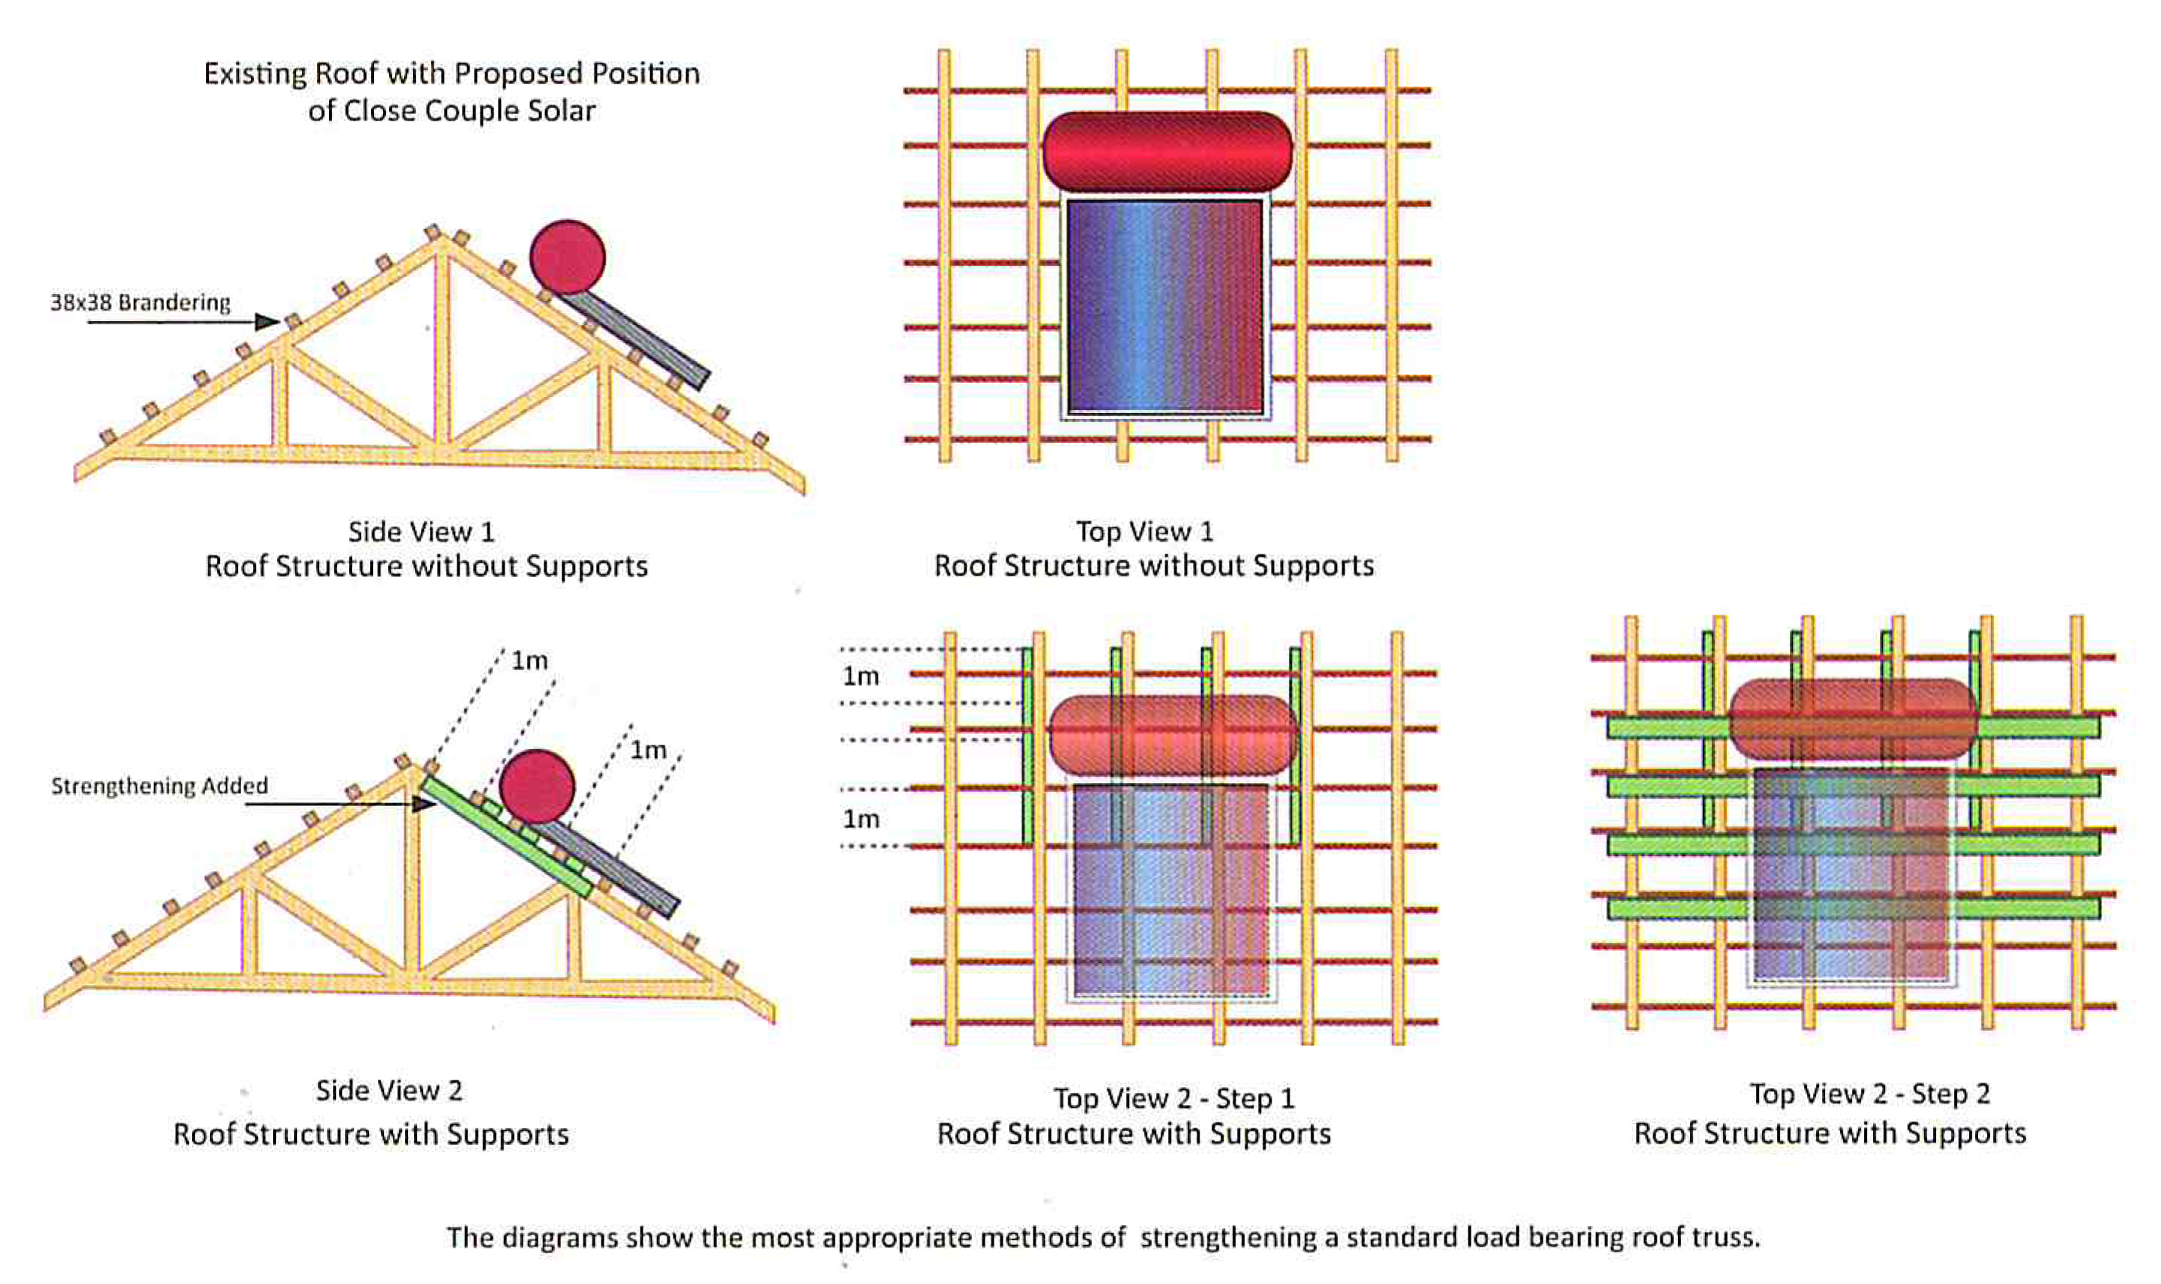 ... an existing roof structure for a solar water heating system